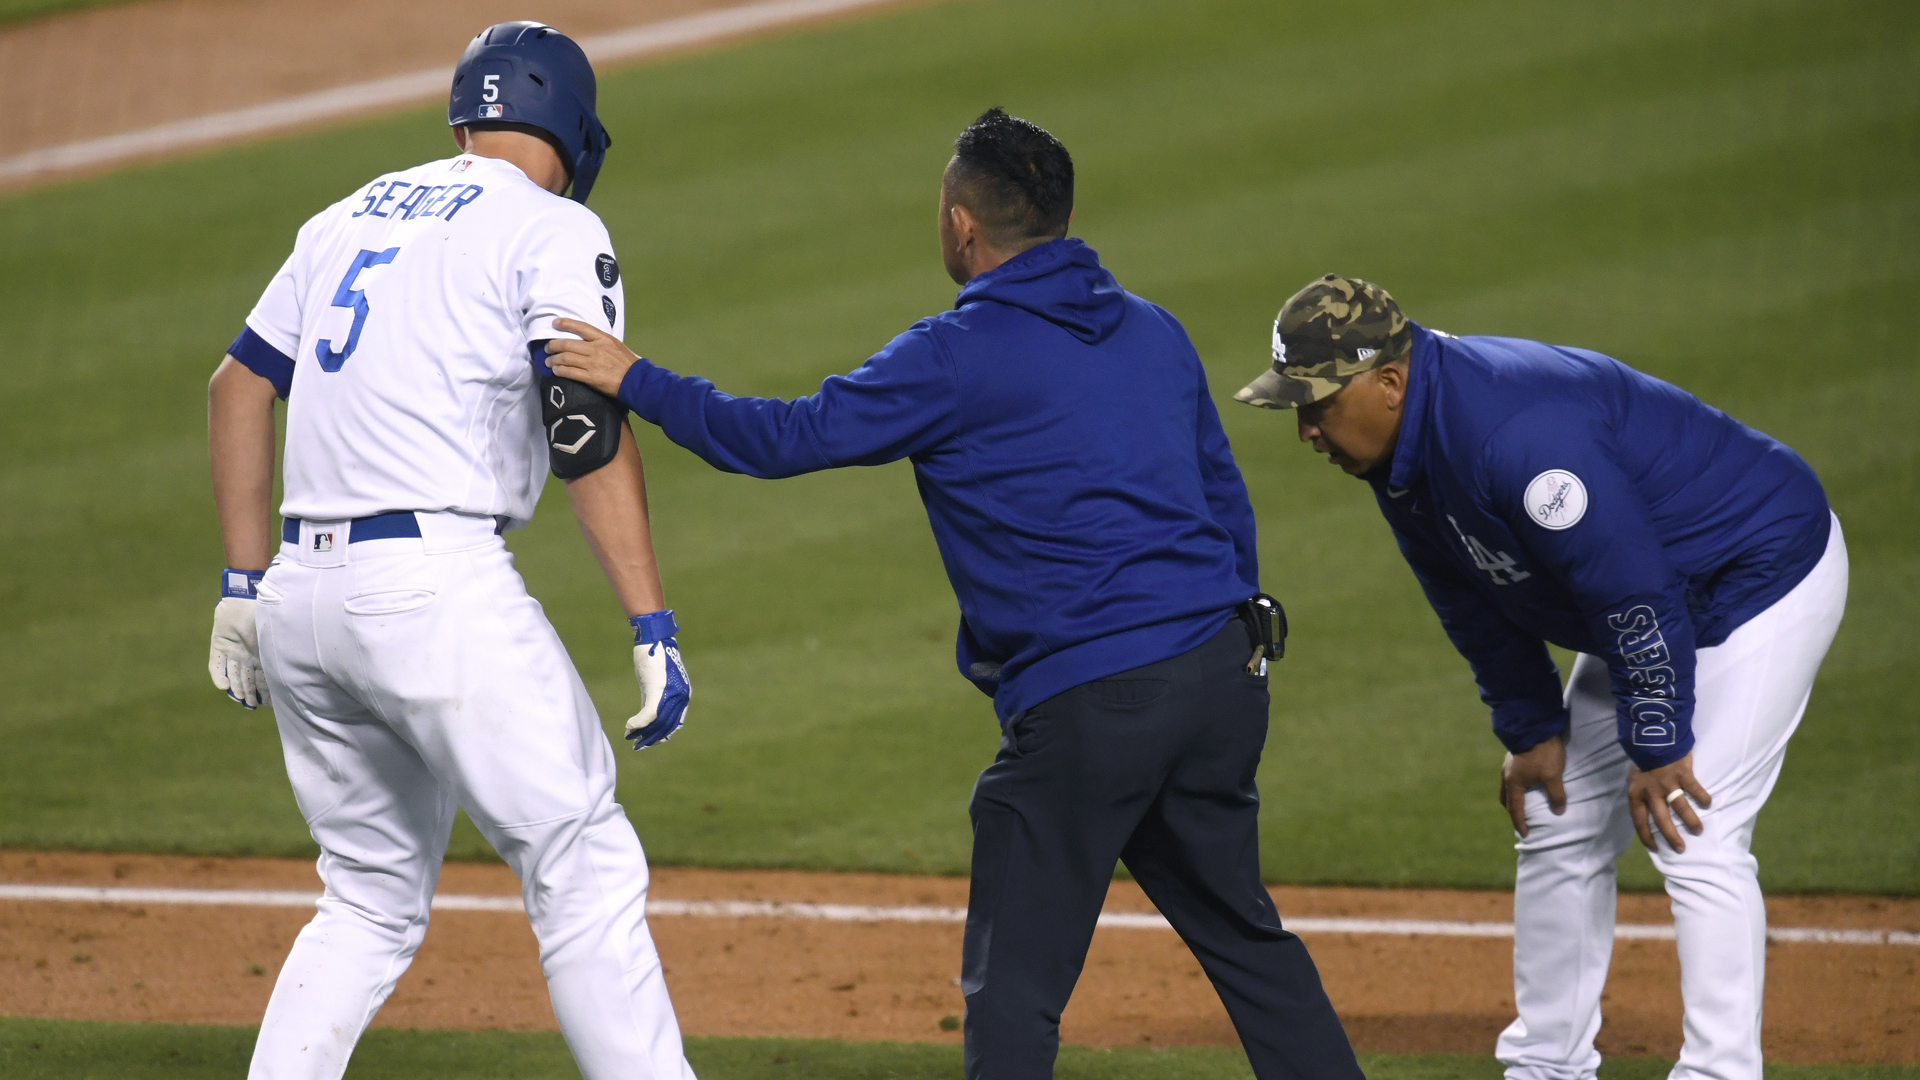 Corey Seager #5 of the Los Angeles Dodgers is helped by Dodgers medical staff after he was hit by a pitch, as Dave Roberts #30 looks on, during the fifth inning at Dodger Stadium on May 15, 2021 in Los Angeles. (Harry How/Getty Images)